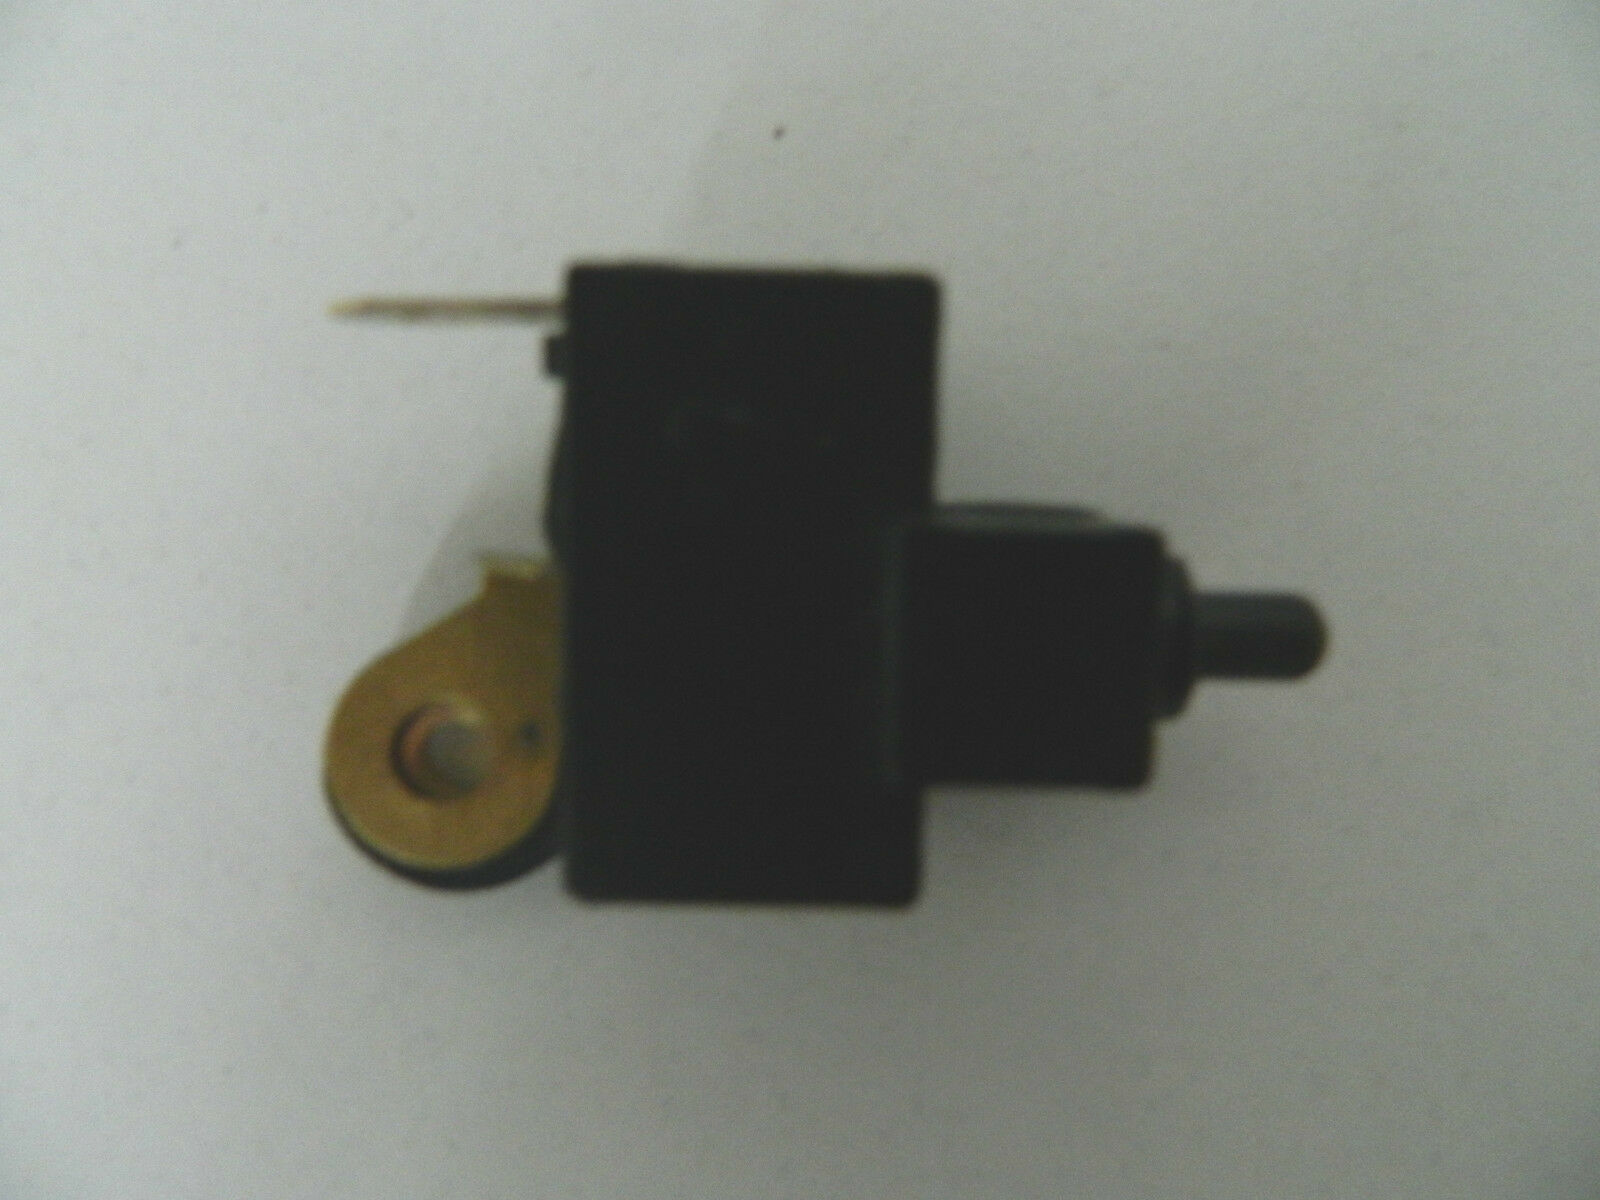 Details about KILL SWITCH suits HONDA MOWER models GXV160 5 5HP ENGINE stop  brake bypass